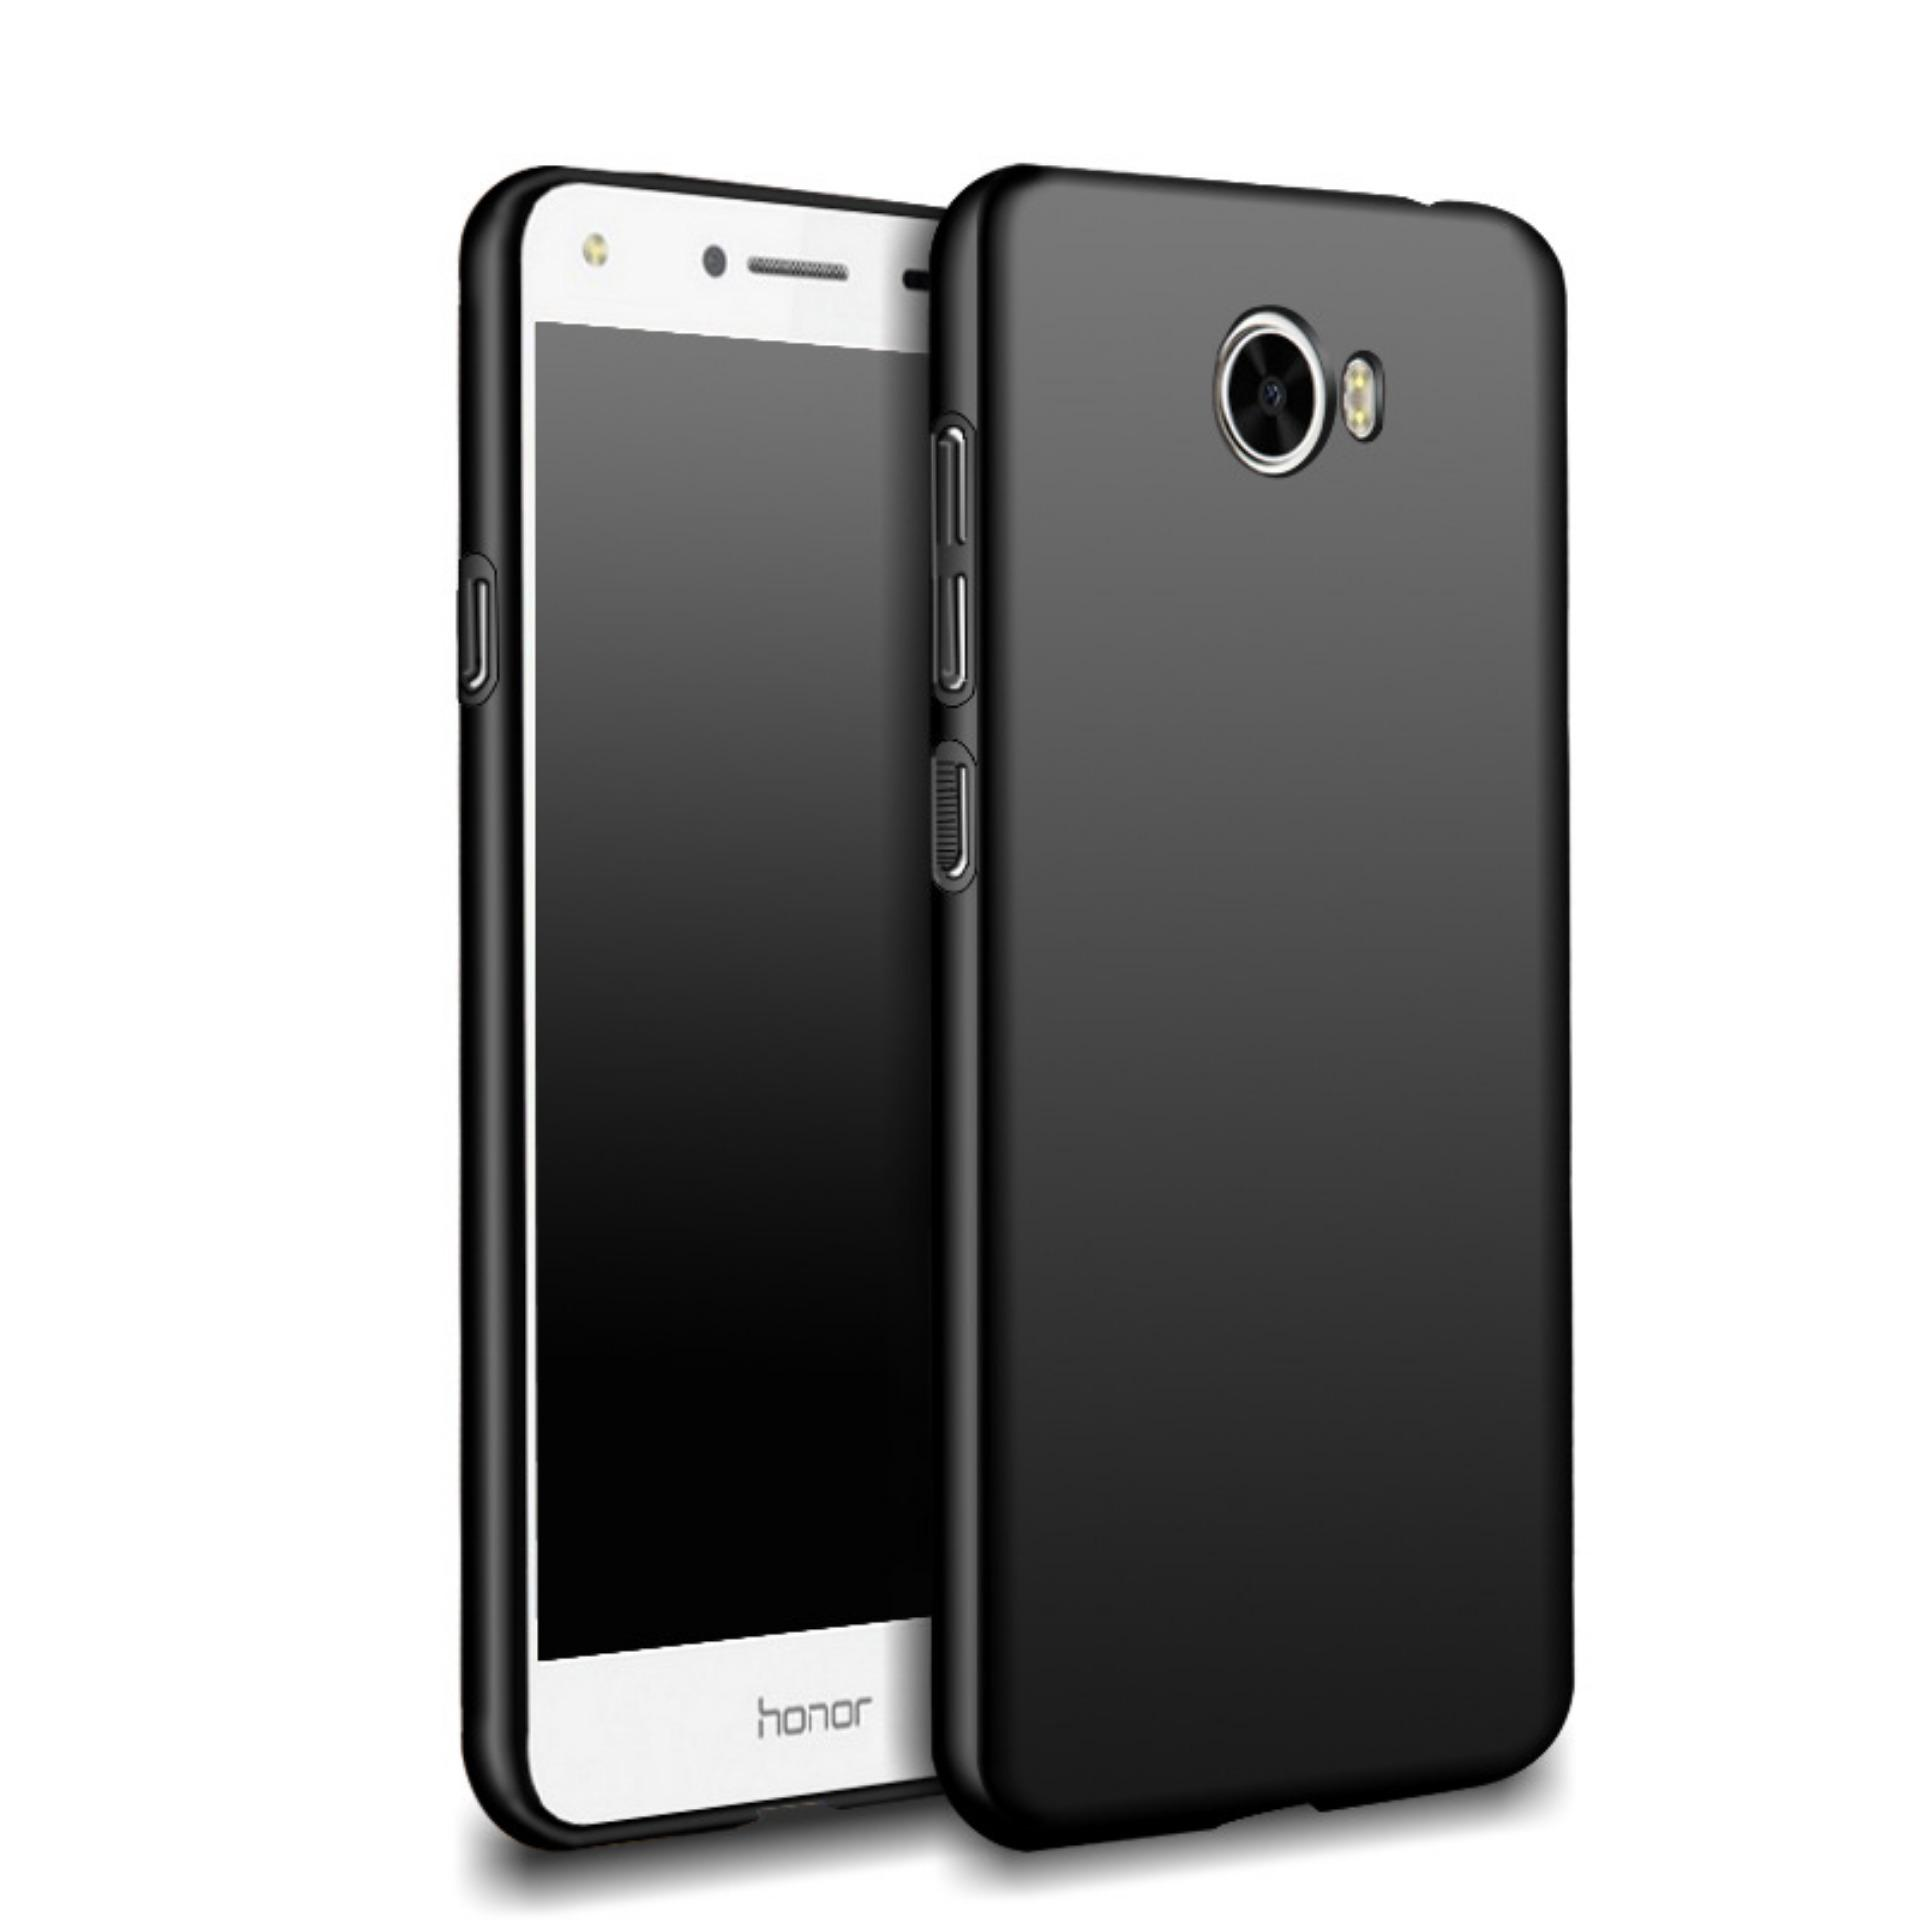 Case Slim Black doff Matte Anti minyak For Huawei Y5ii  - Black Doff